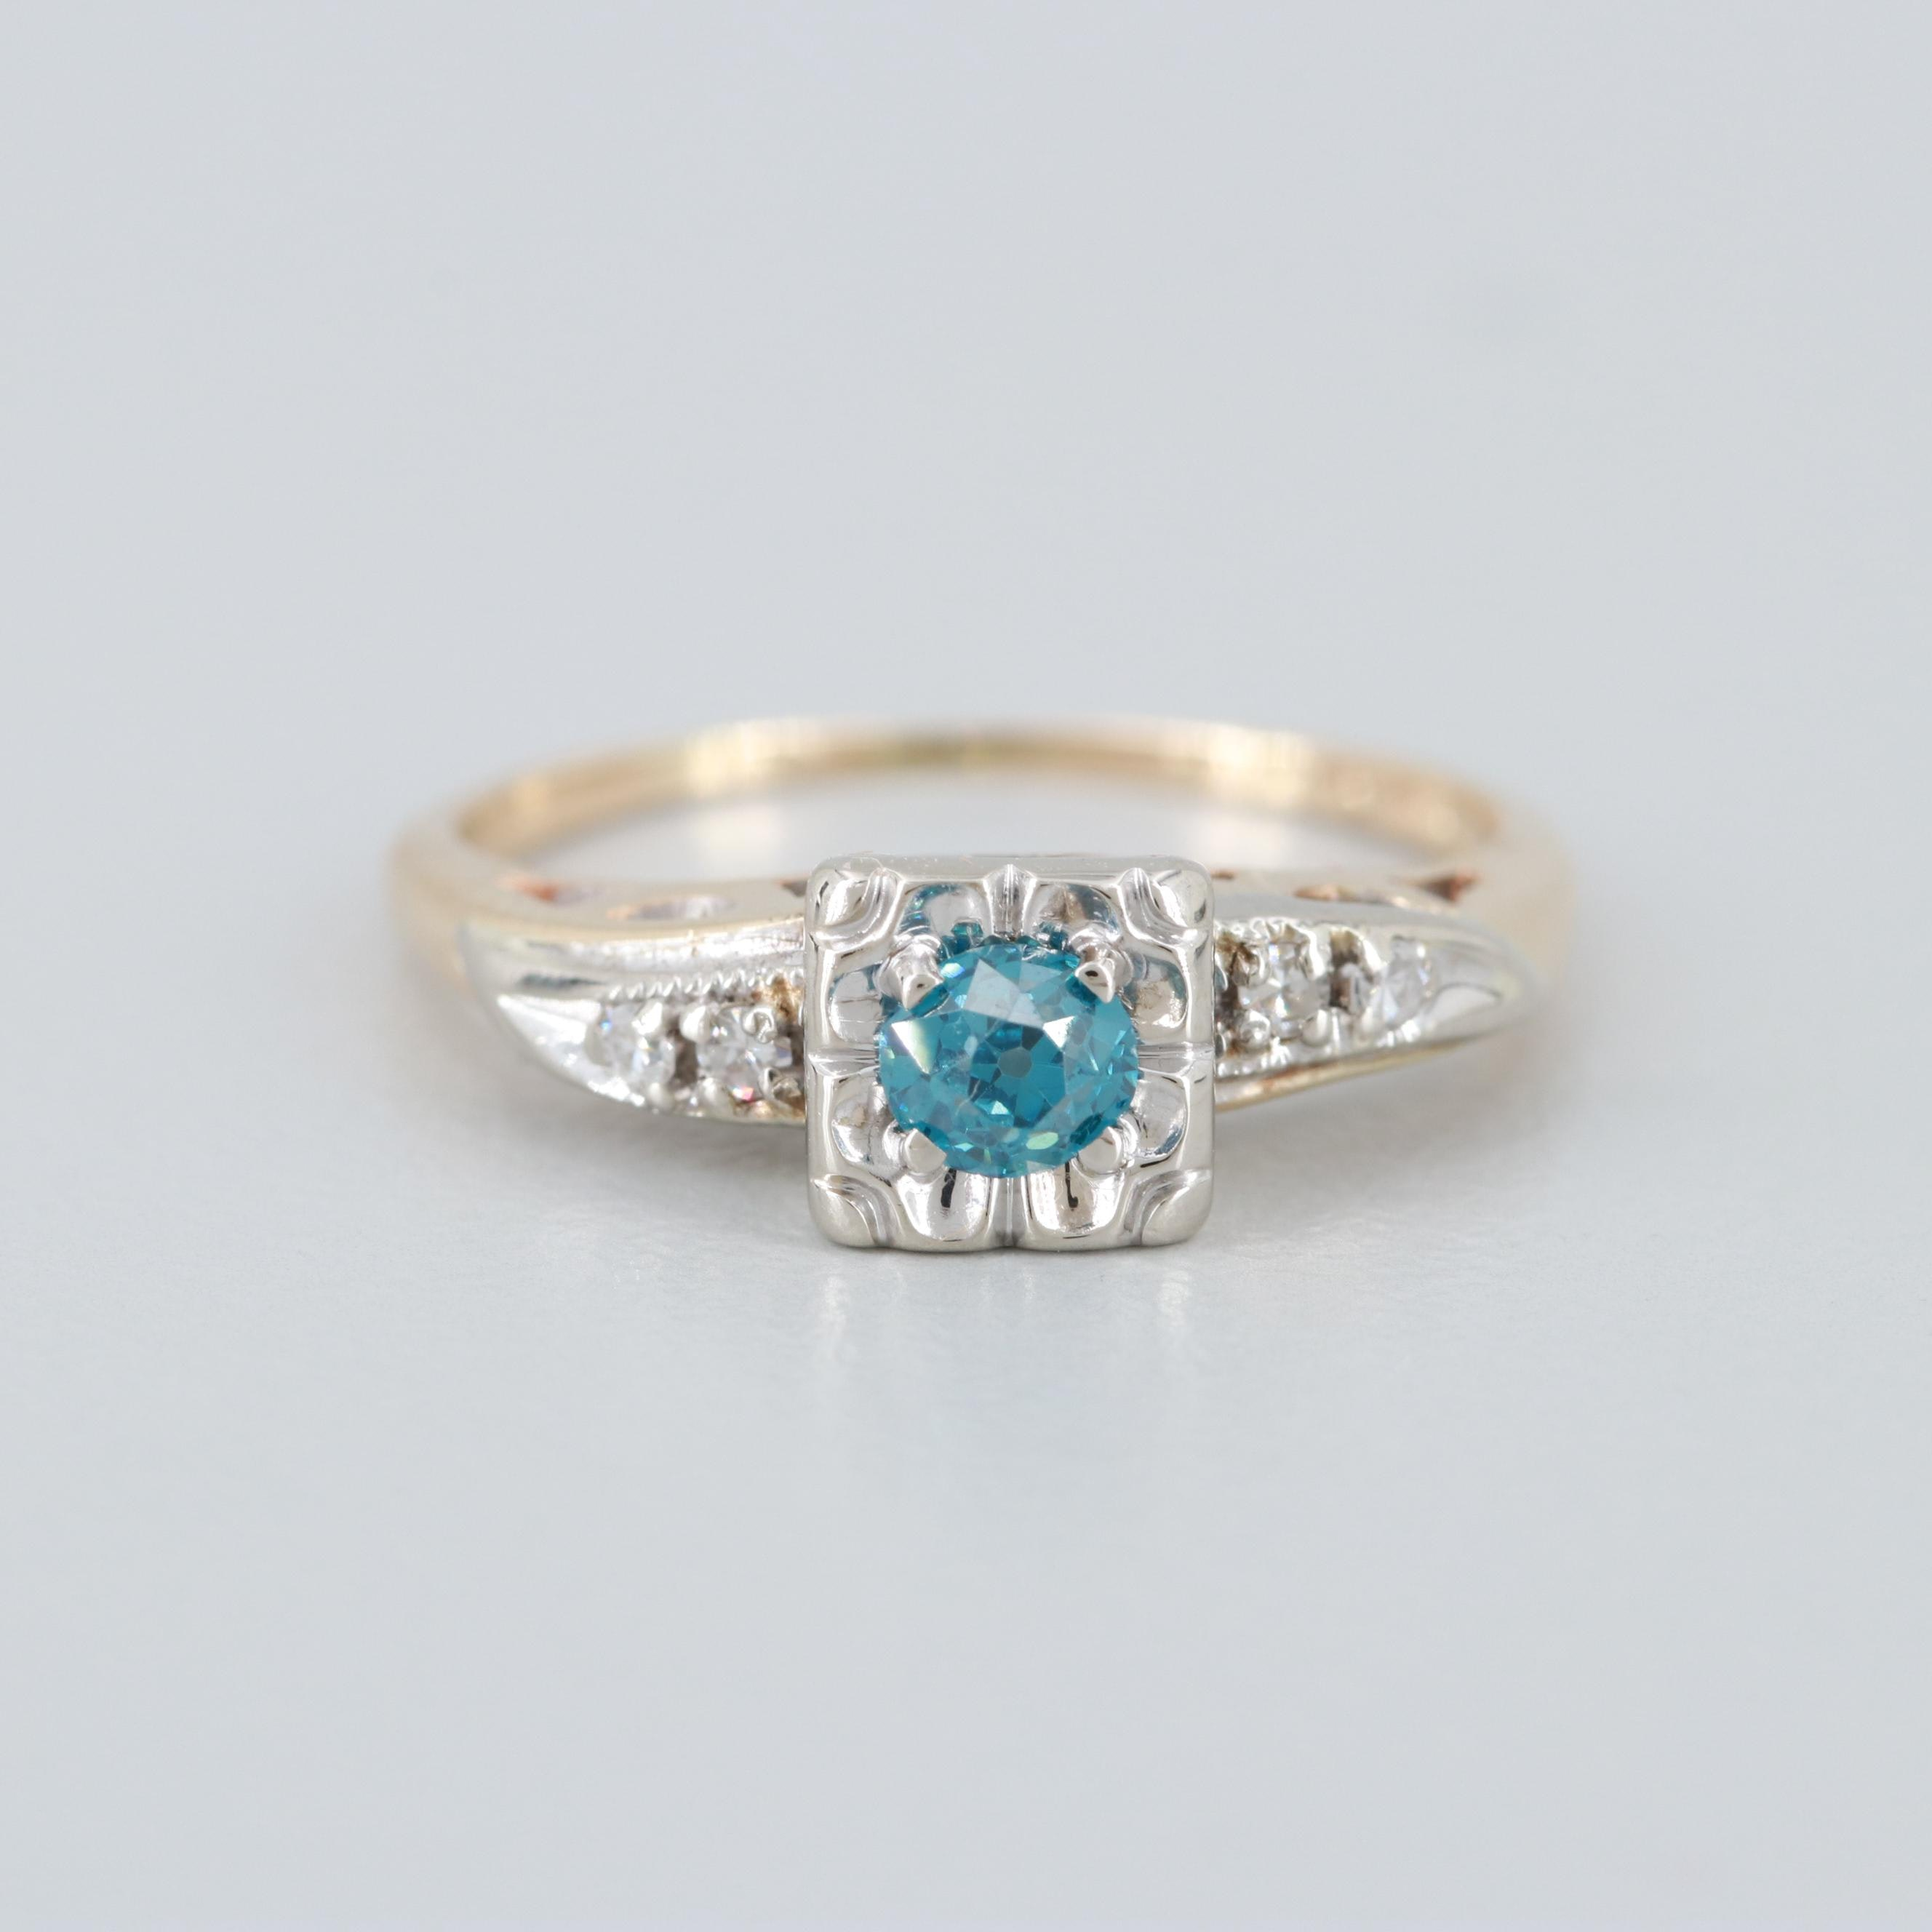 14K Yellow and White Gold Diamond Ring Showcasing a Blue Diamond